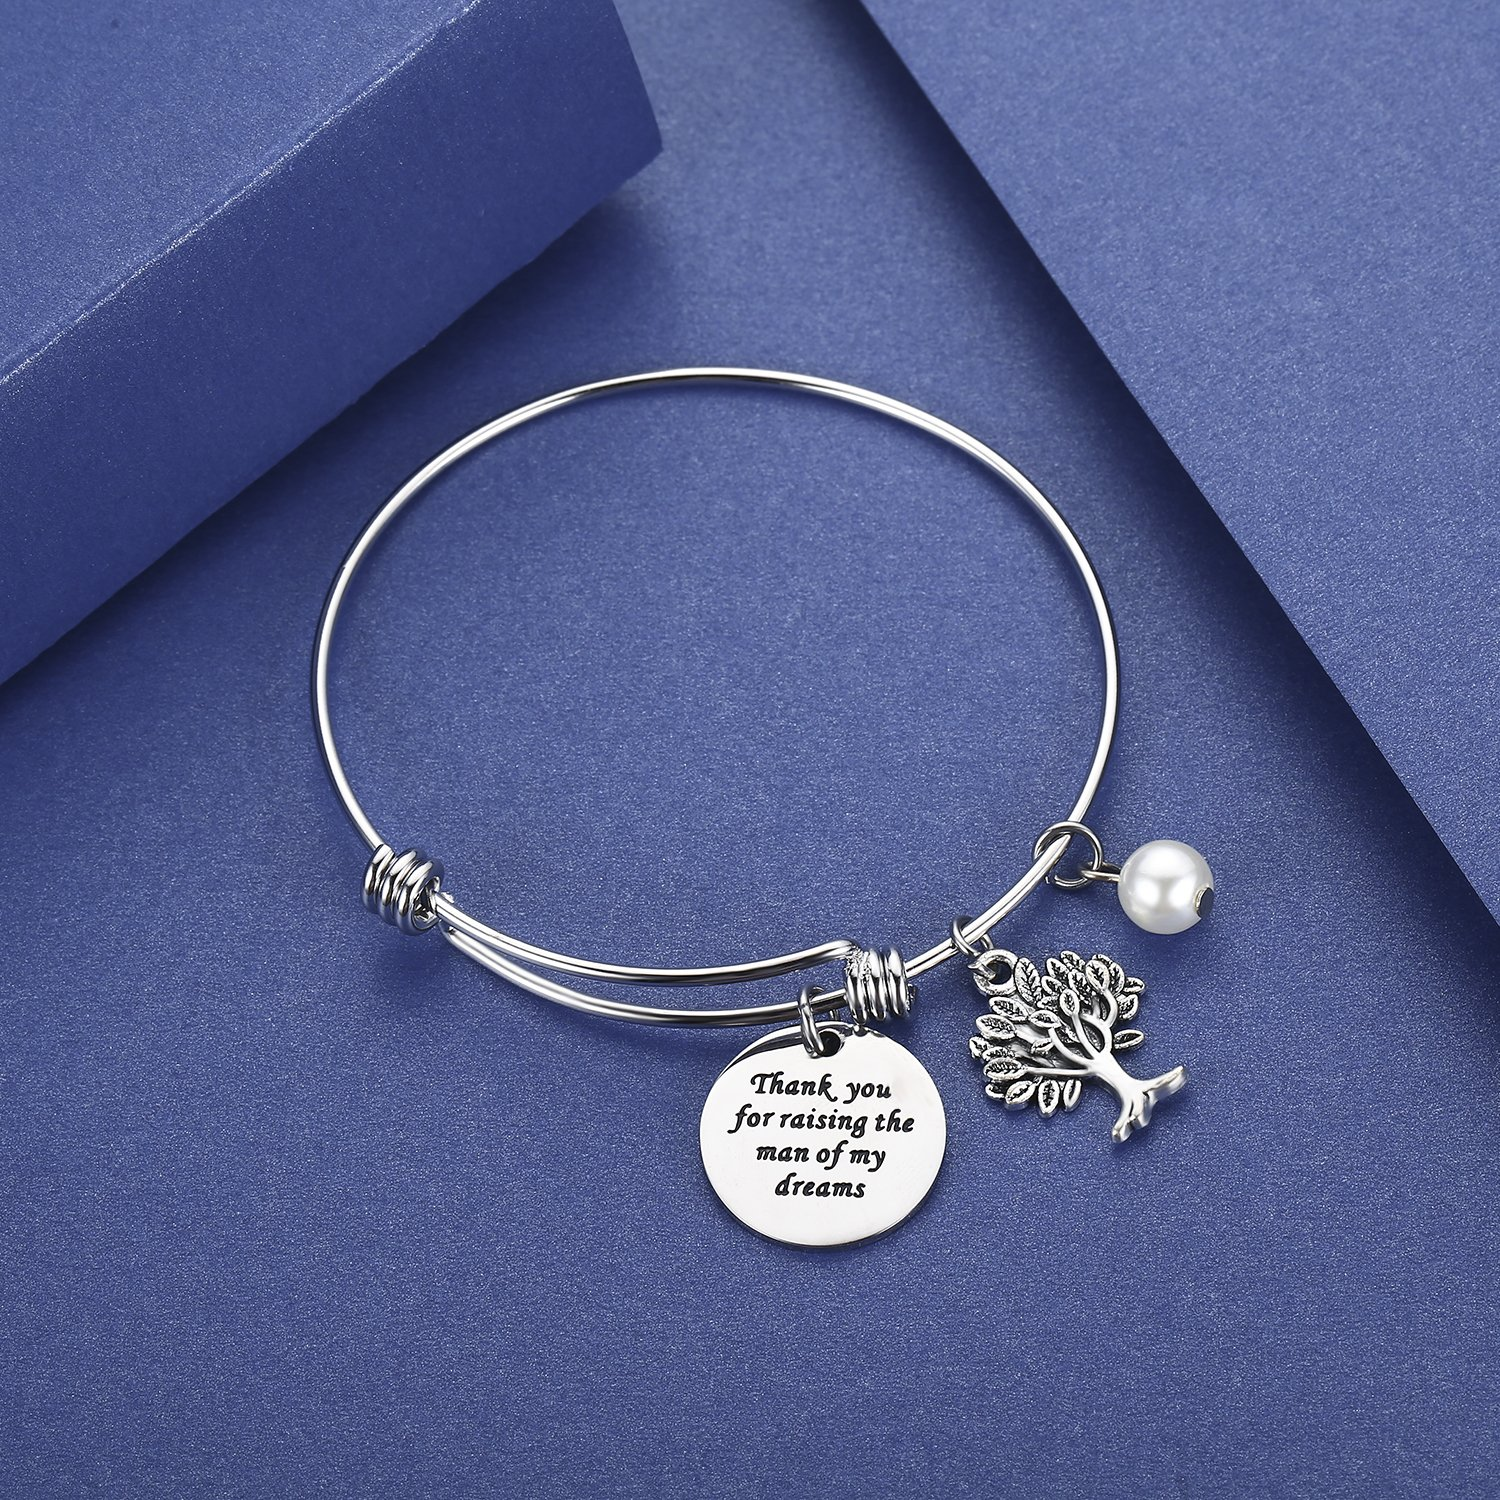 CJ&M Mother In Law Gift Family Tree Bracelet - Thank You For Raising The Man / I Will Take Care Of Her Always Bracelet Christmas Gifts,Mother's Day Gifts (Thank-Raising-Bracelet) by CJ&M (Image #3)